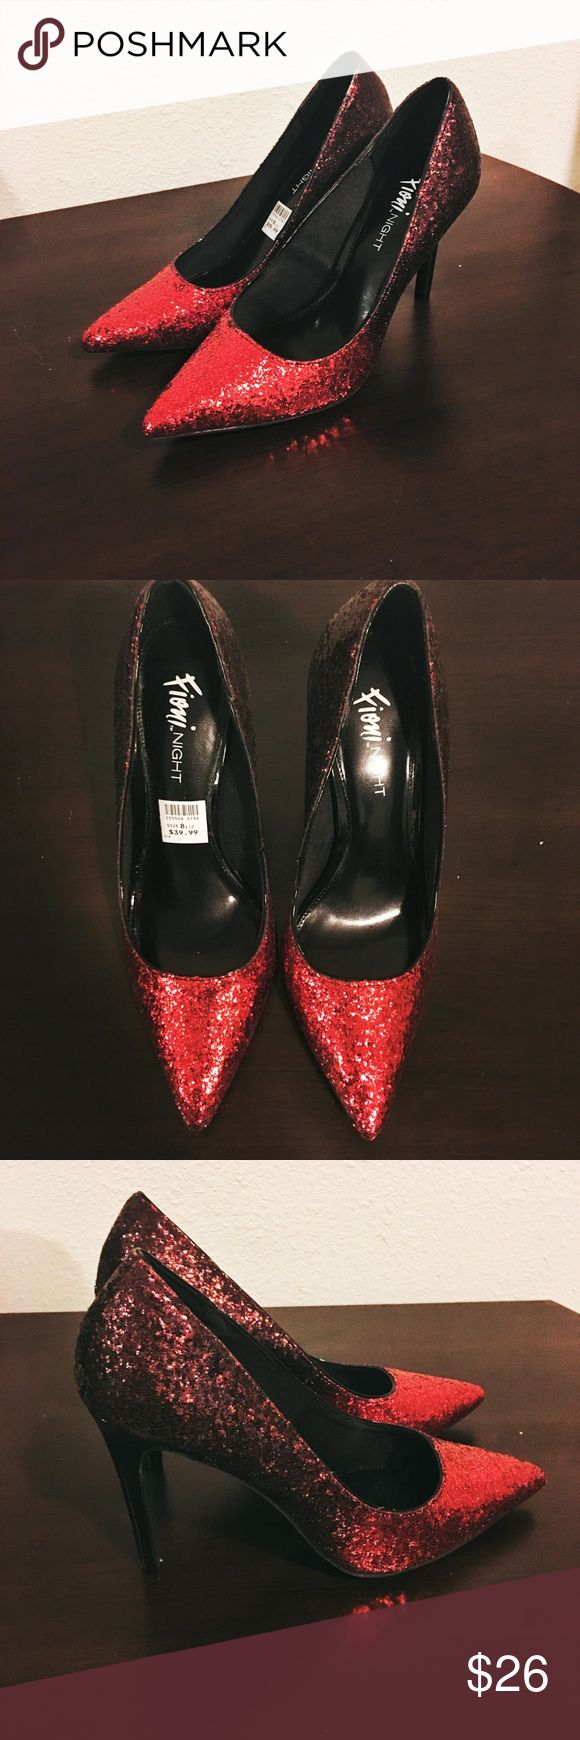 Fioni Night Red Glitter High Heels Never worn. In brand new condition. Perfect for a night out in the town! Fioni NIGHT Shoes Heels